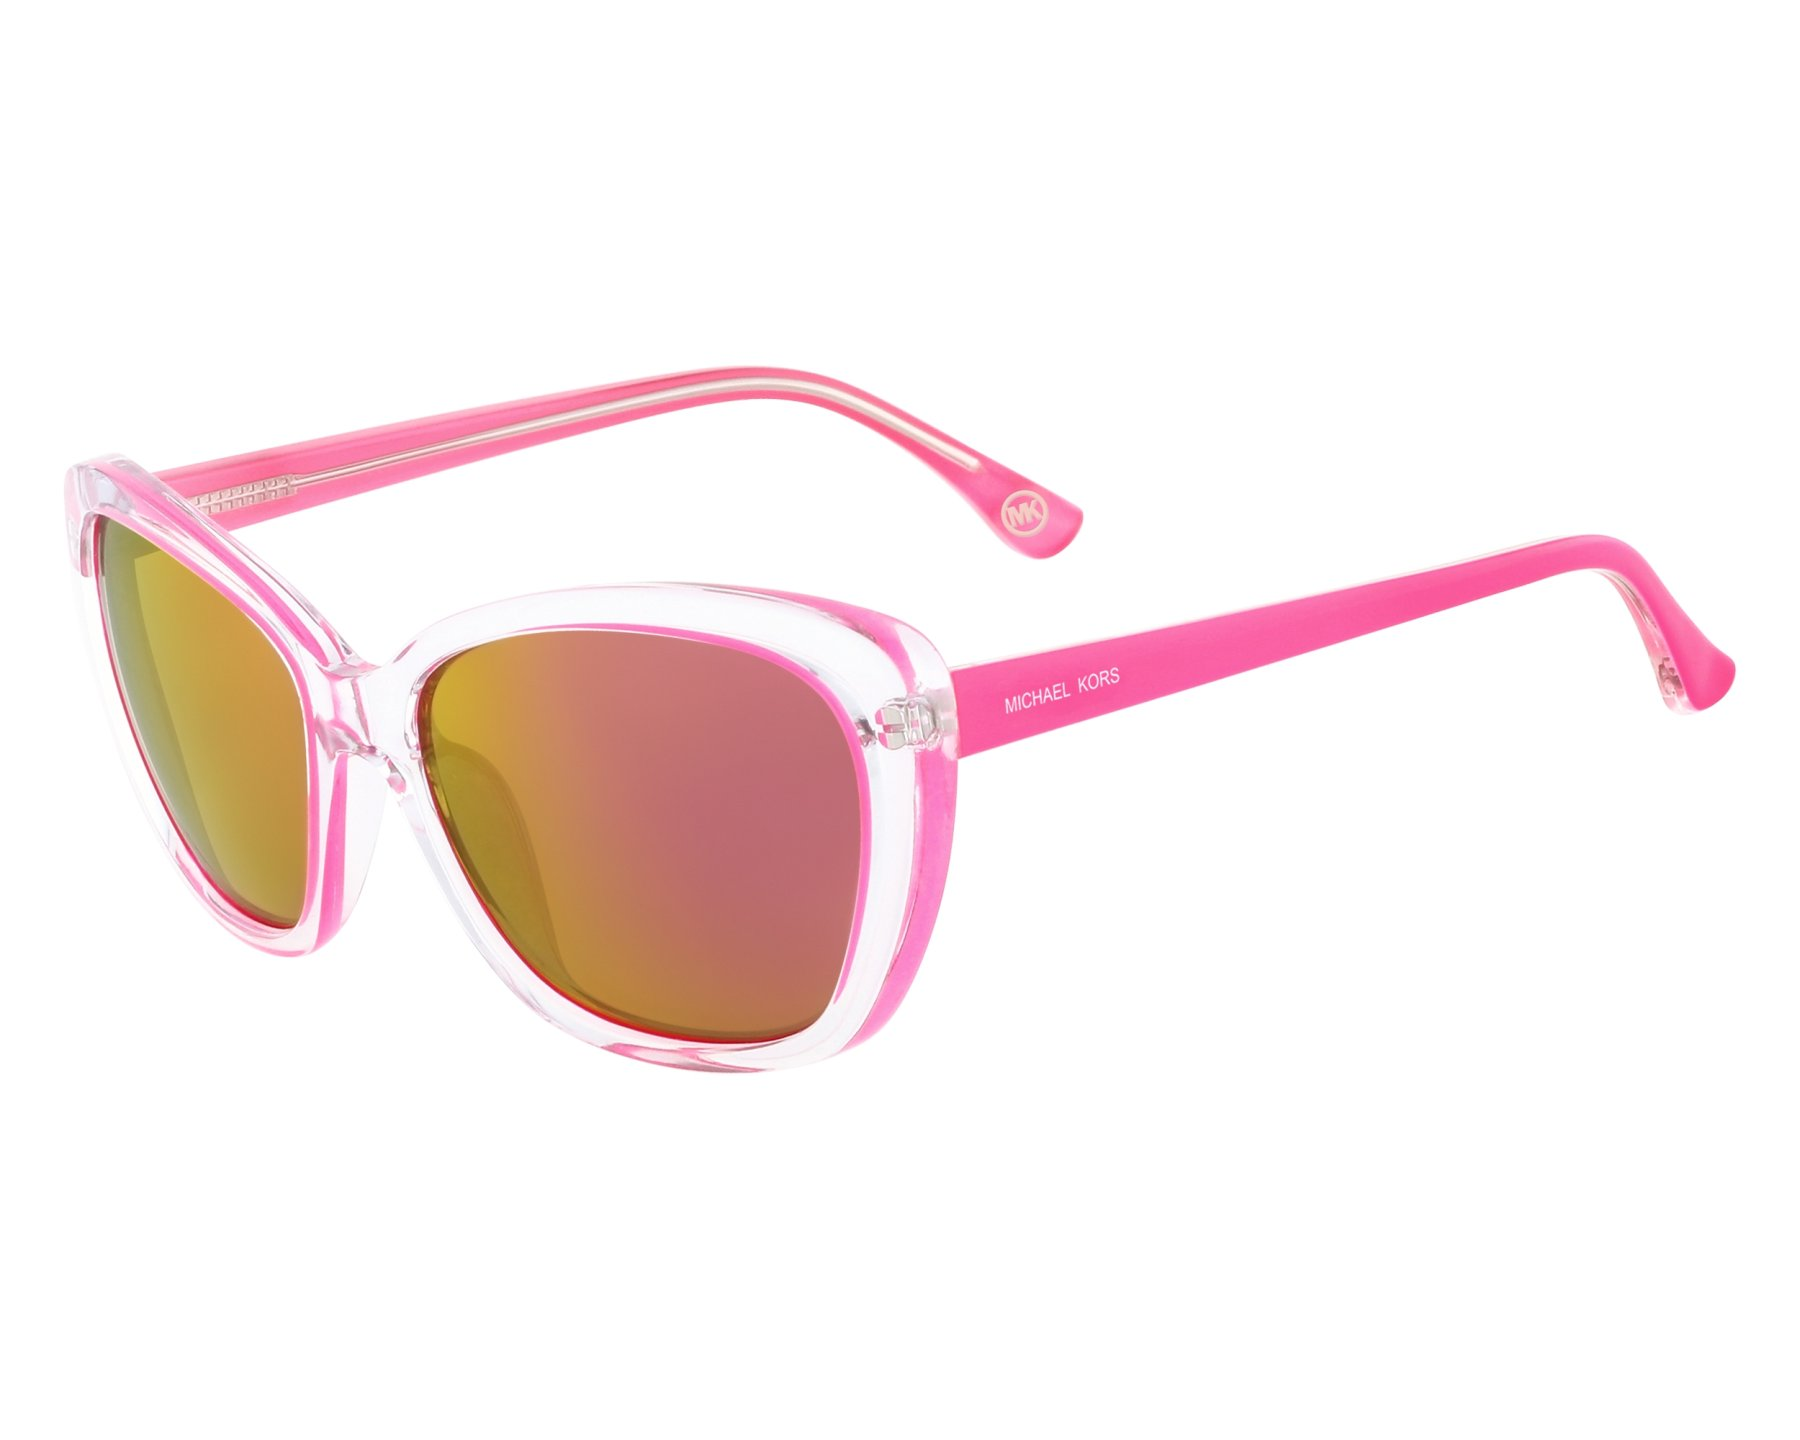 bd38d6a9752c Sunglasses Michael Kors M-2903-S 628 - Crystal Pink front view